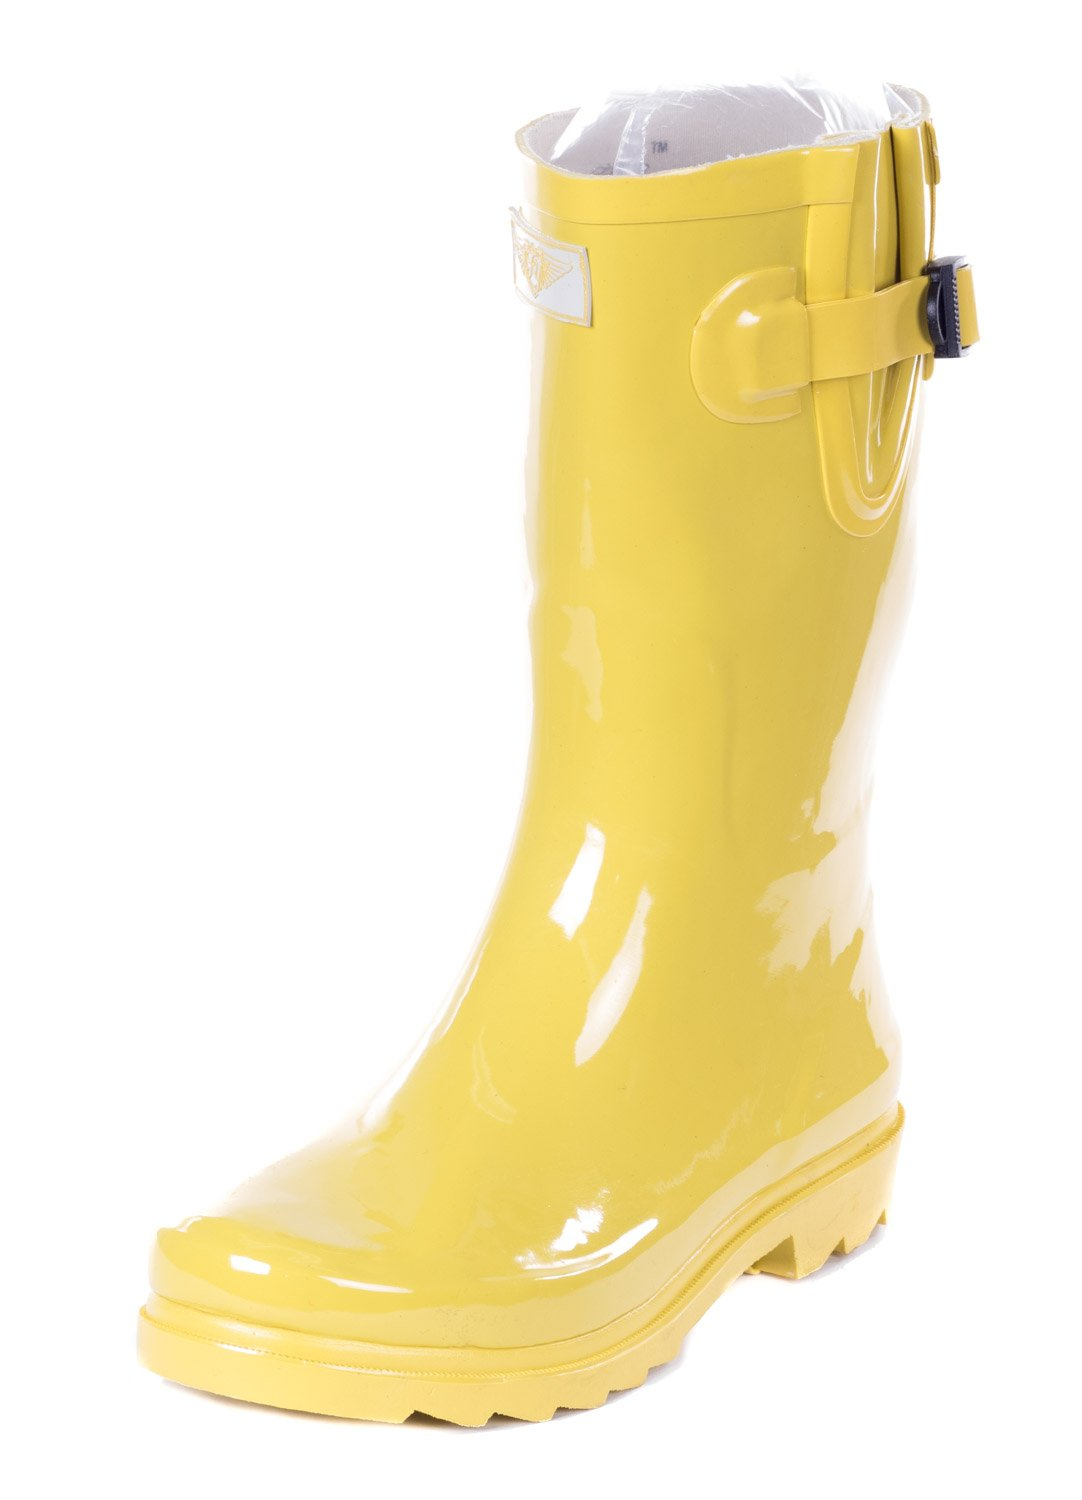 Forever Young Women's Yellow Rubber 11-inch Mid-Calf Rain Boots 9